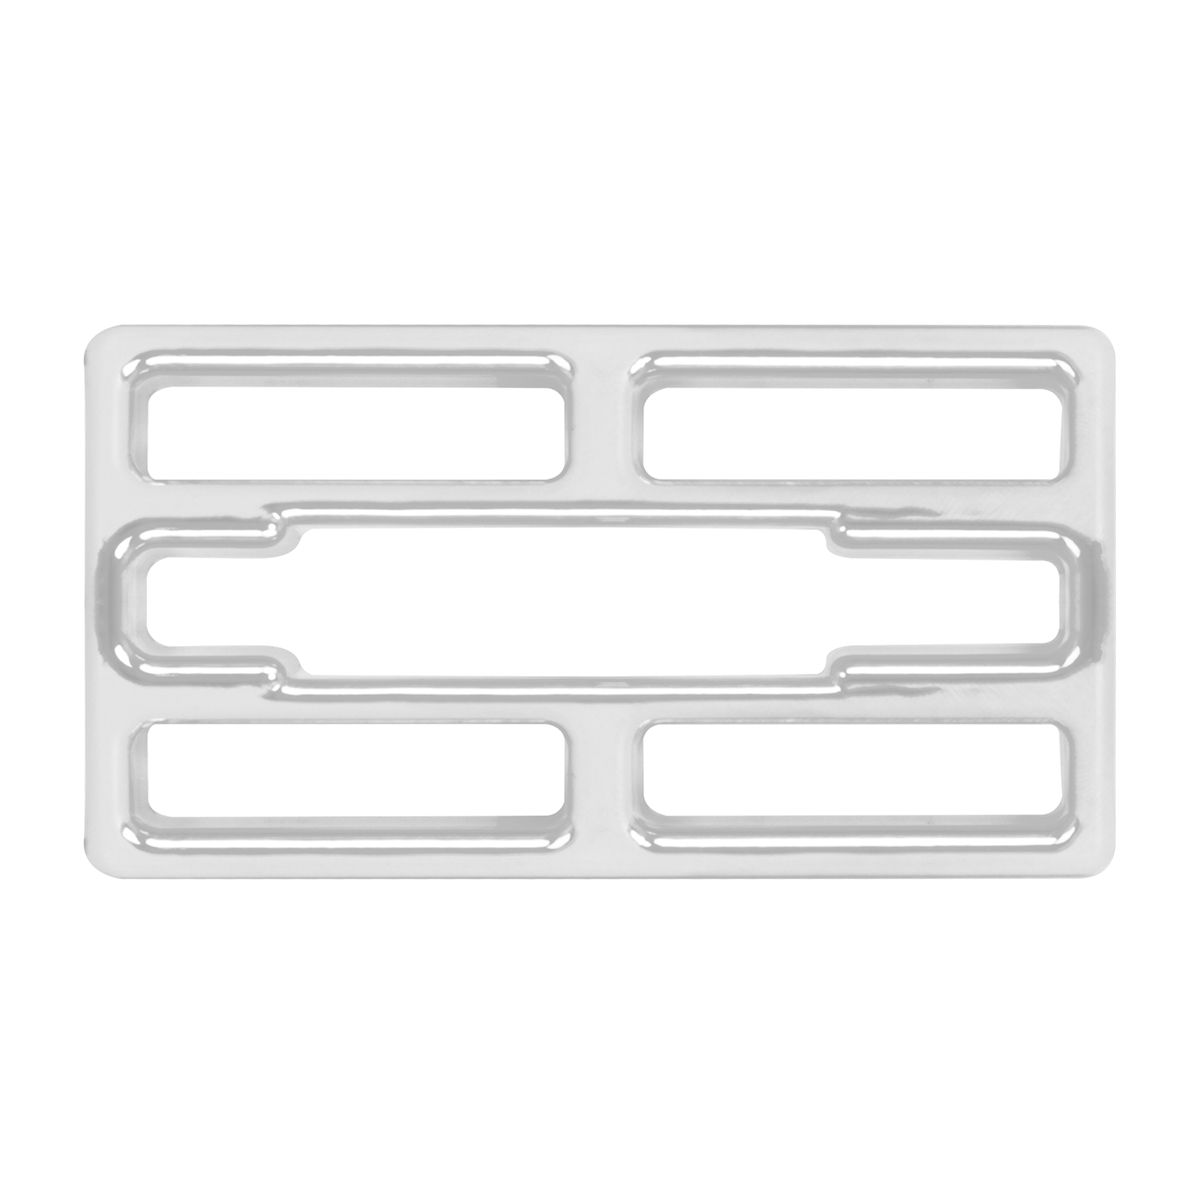 68429 Small A/C Vent Cover for Kenworth W